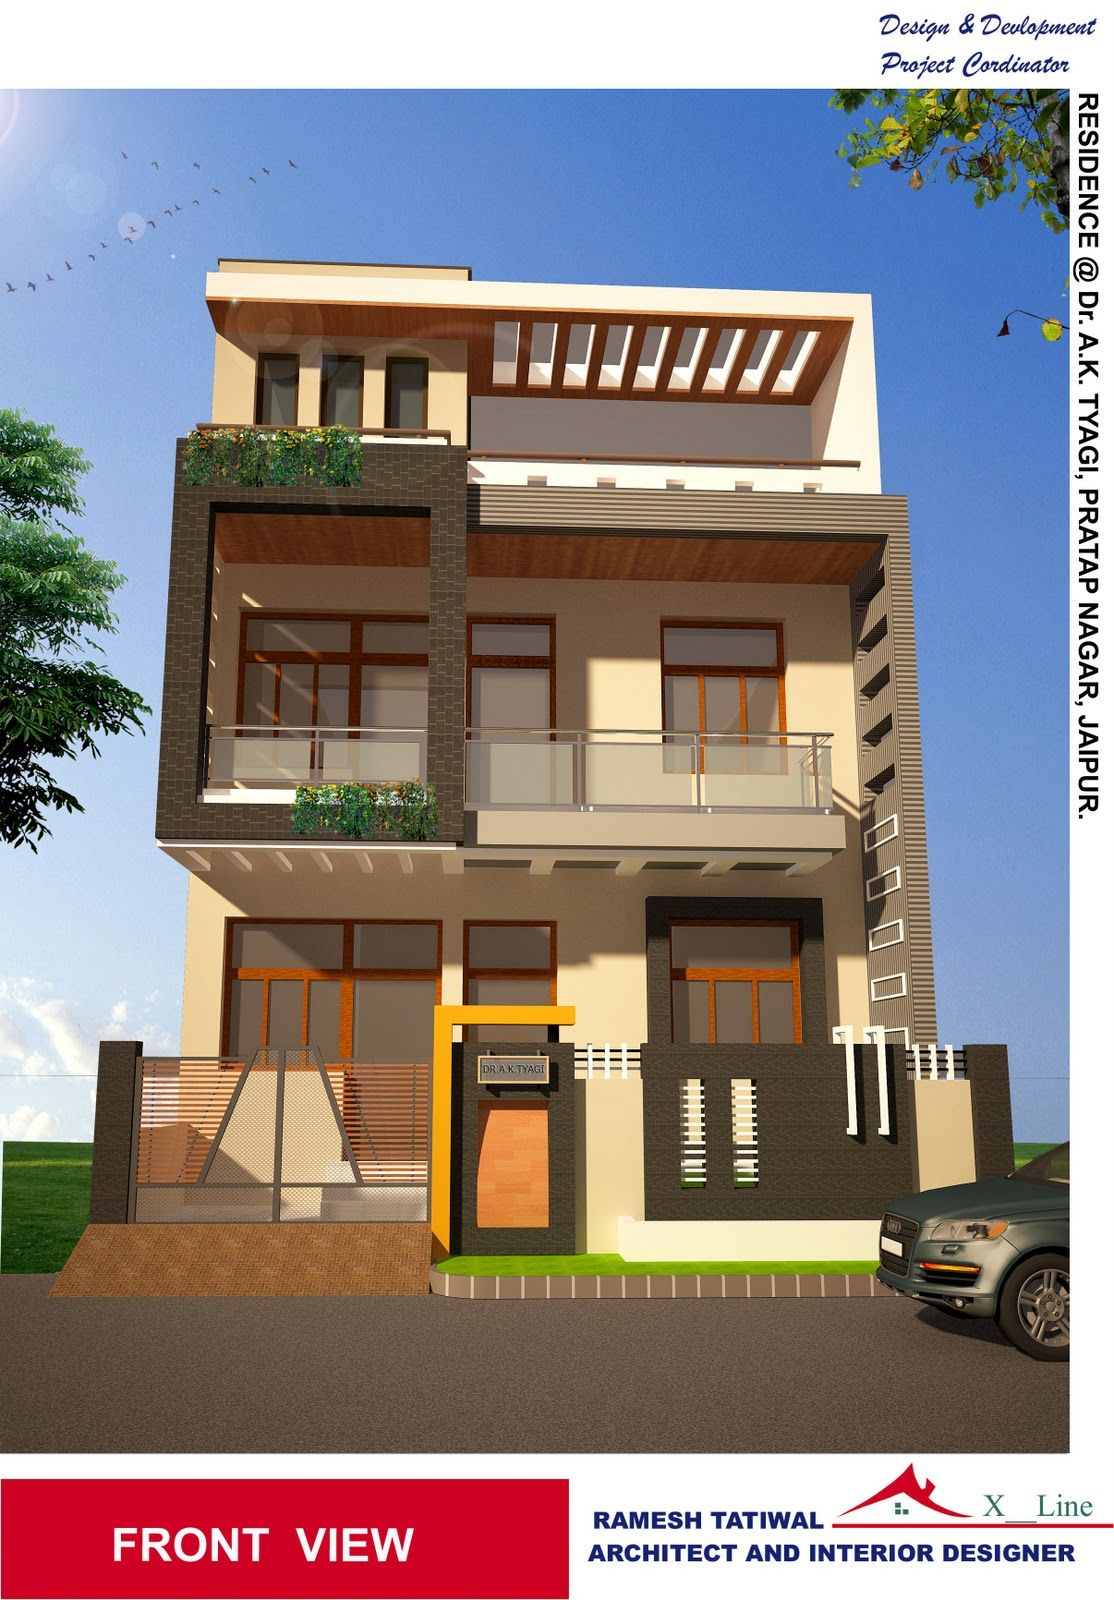 Housedesigns modern indian home architecture design from for House architecture styles in india